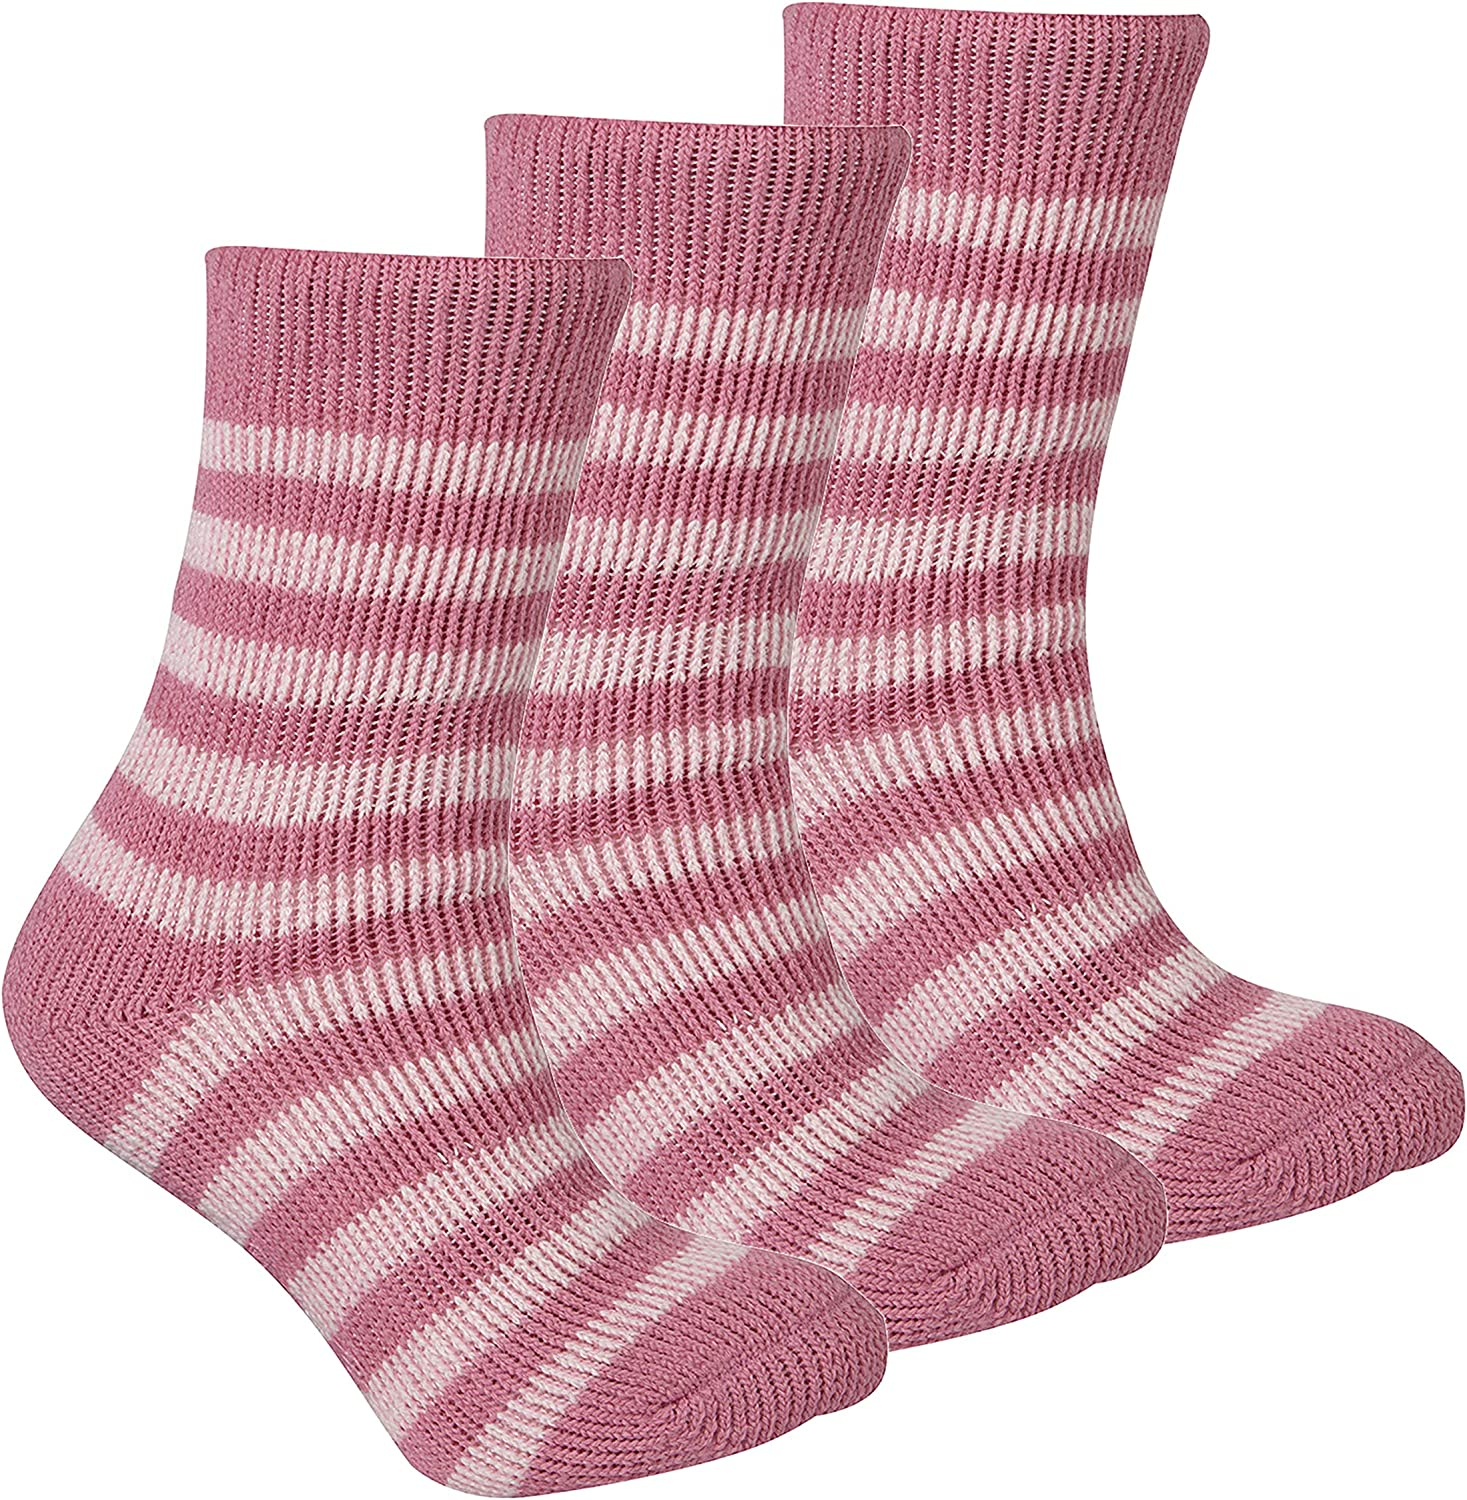 RED TAG Childrens Kids Girls Extreme Thermal Socks Striped W//Grippers TOG 2.45